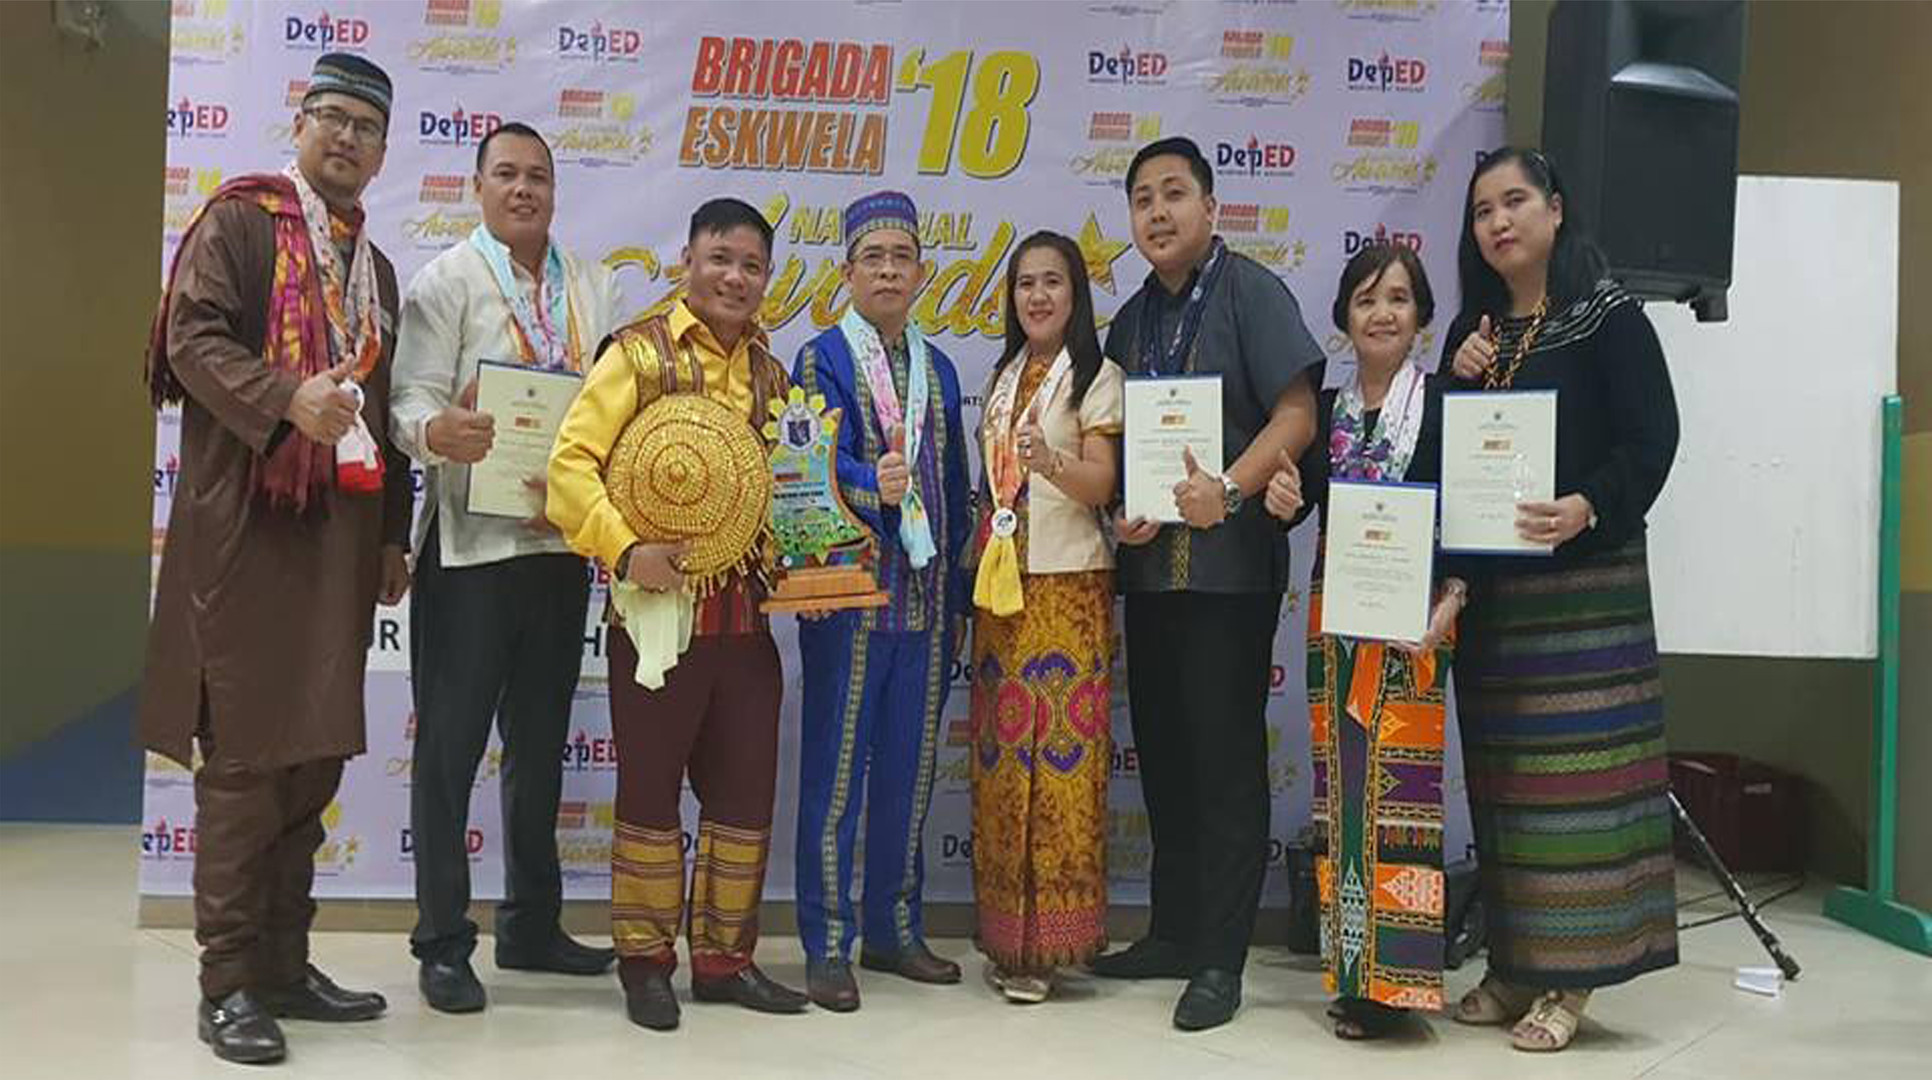 Awarding Ceremony at Dipolog City, Zamboanga del Norte